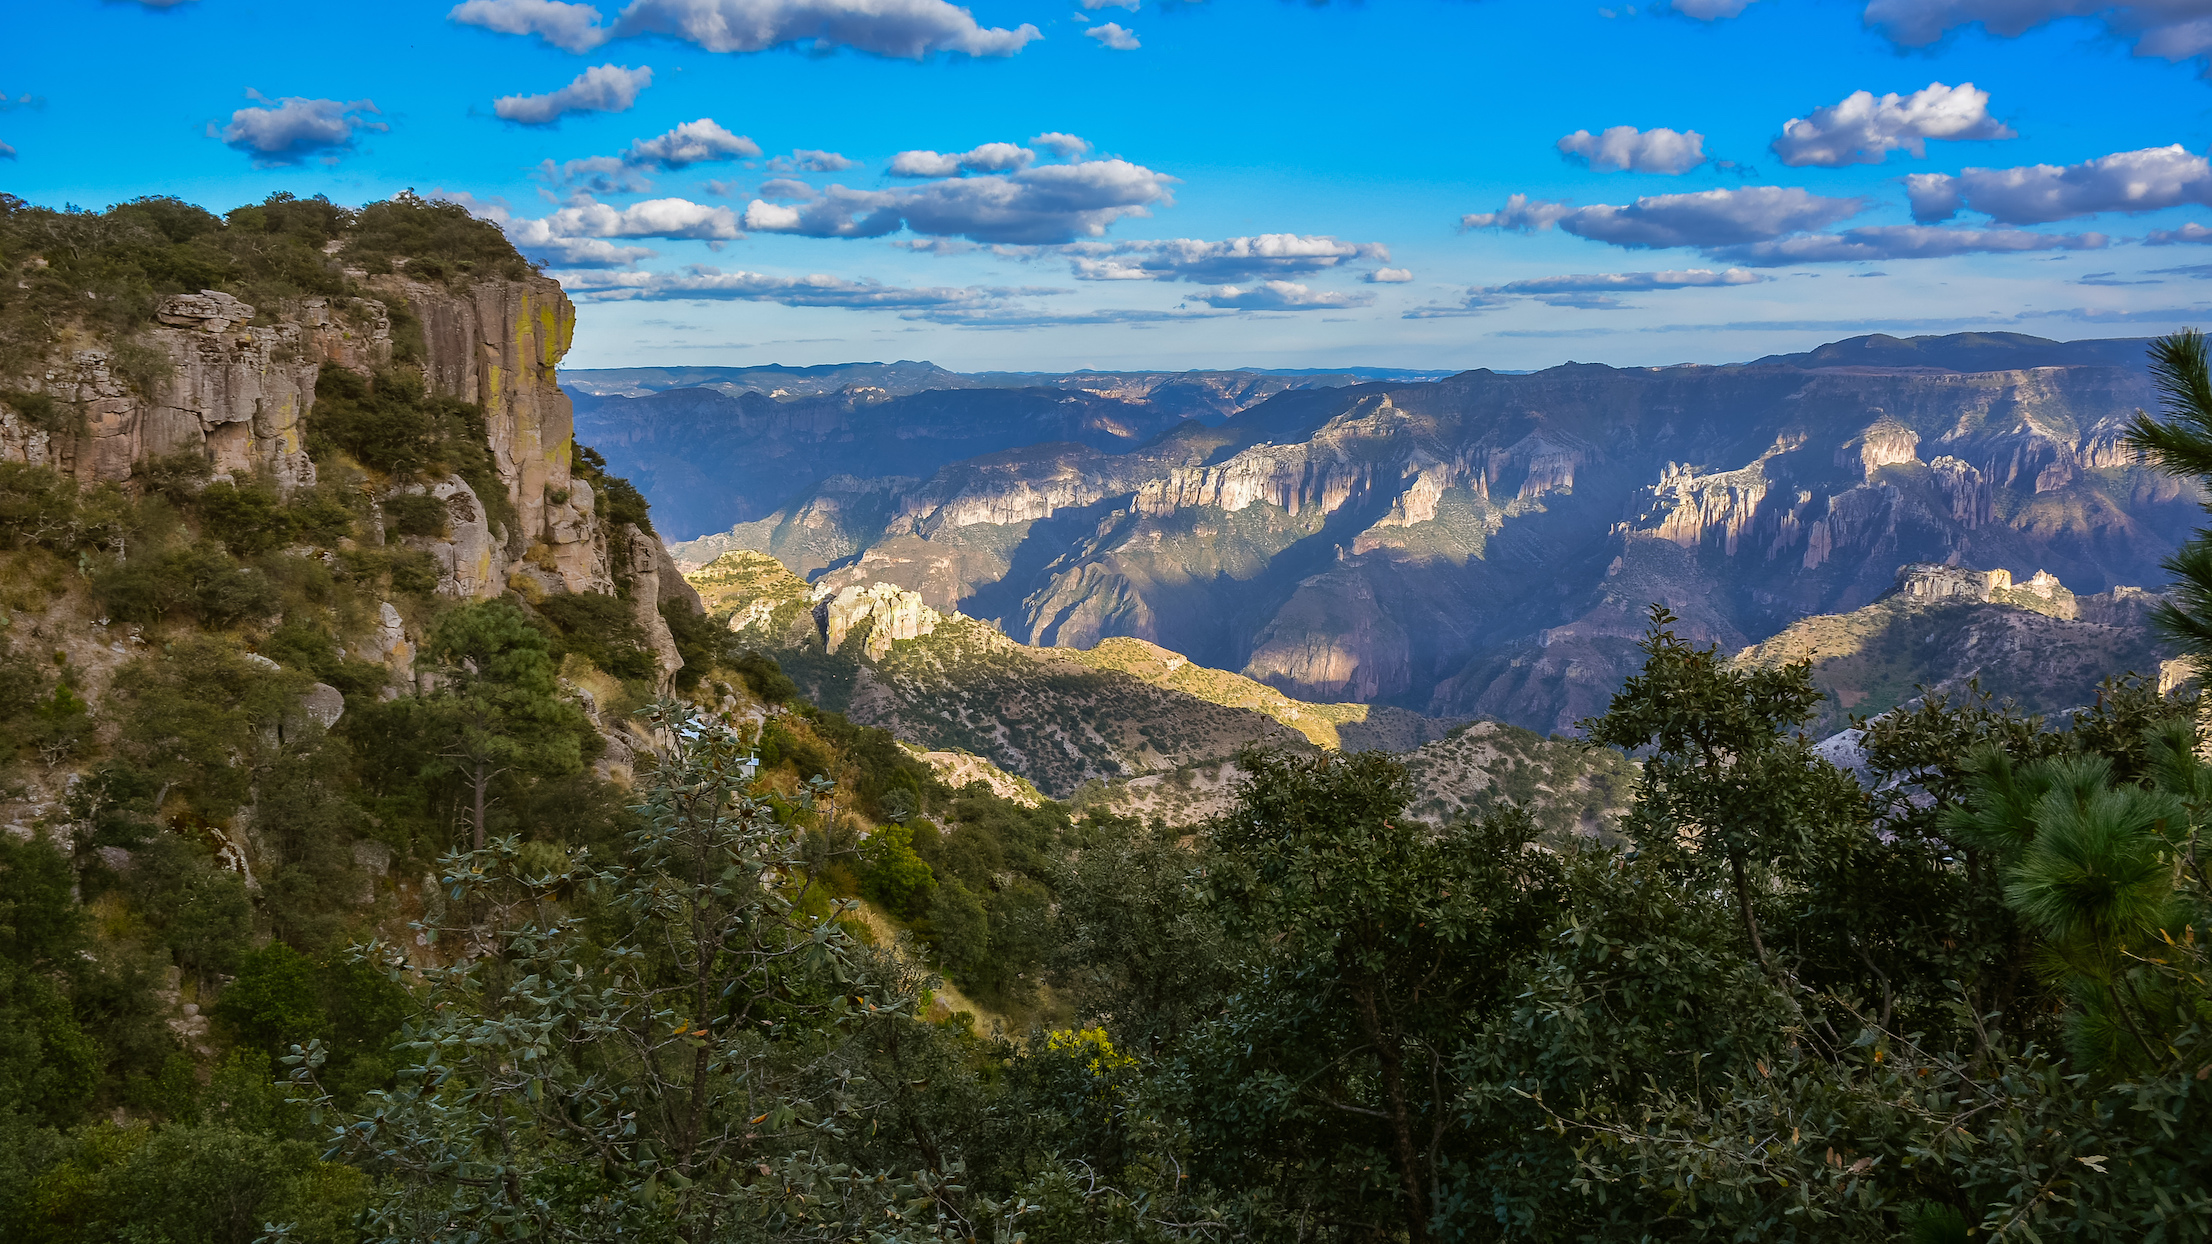 The Copper Canyon region of Chihuahua, Mexico is steeped in legends and mystery. The area is known for the Rarámuri, a group of indigenous people also known incorrectly as the Tarahumara.